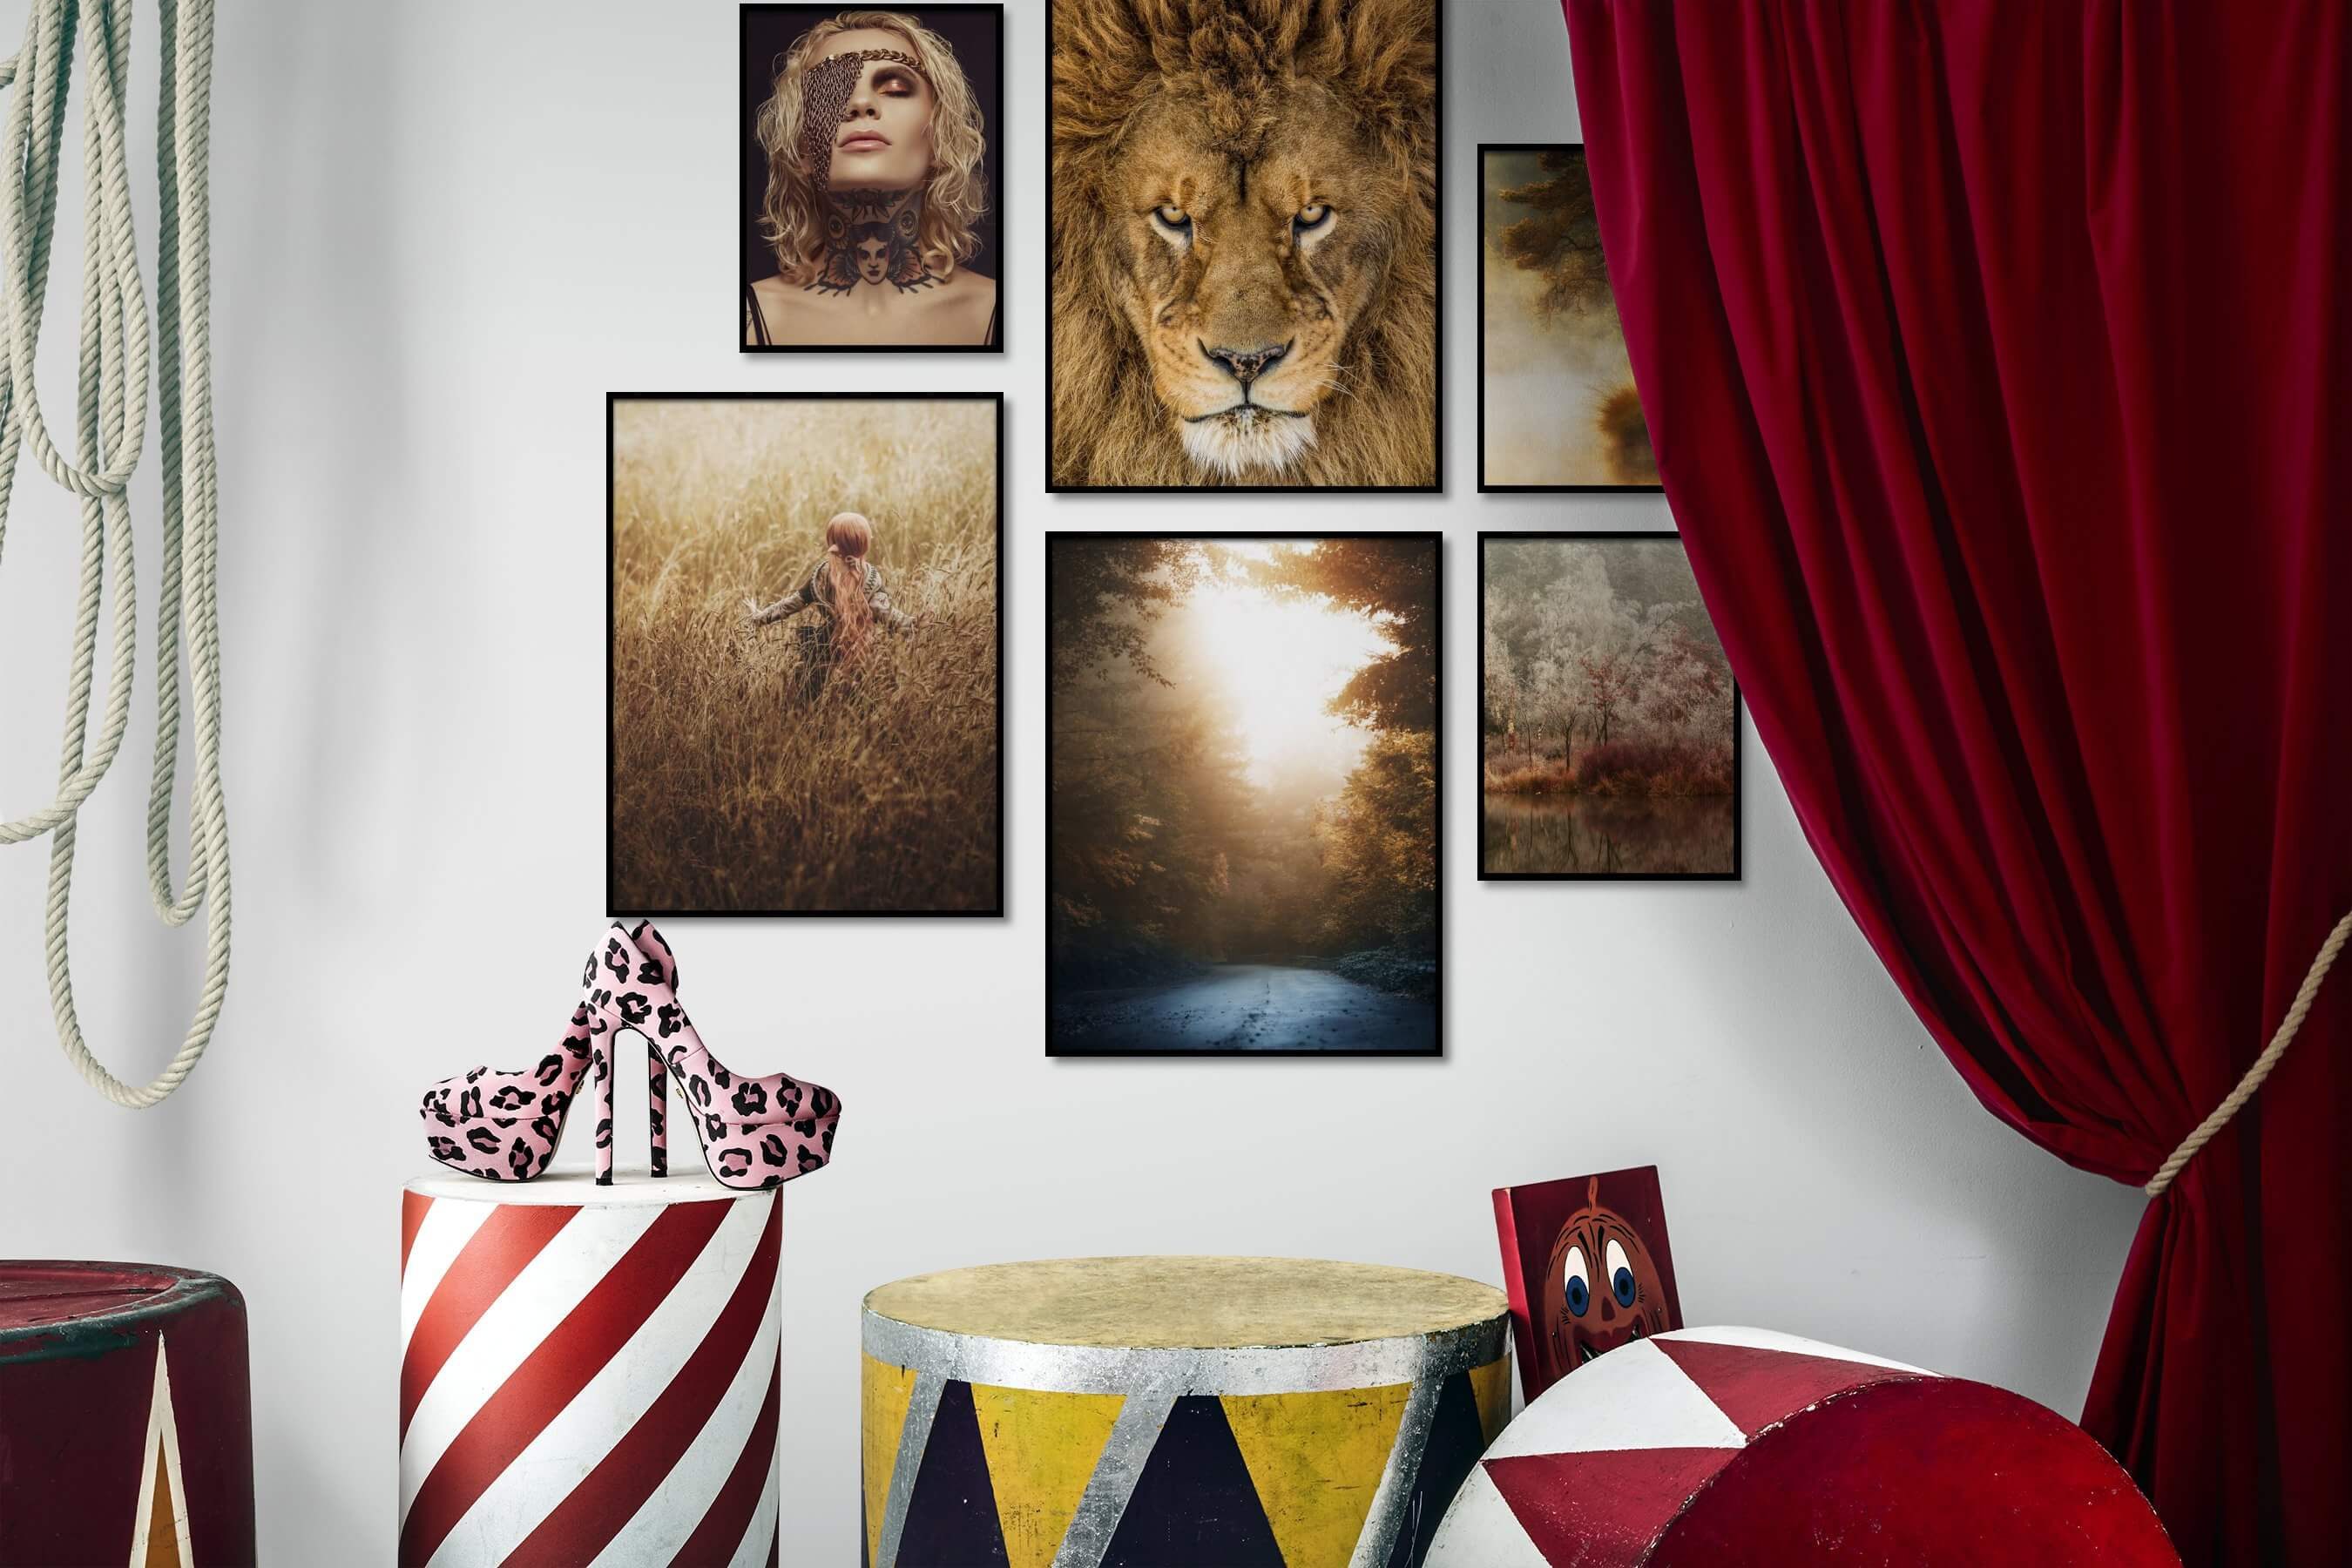 Gallery wall idea with six framed pictures arranged on a wall depicting Fashion & Beauty, Animals, Country Life, Mindfulness, and Nature